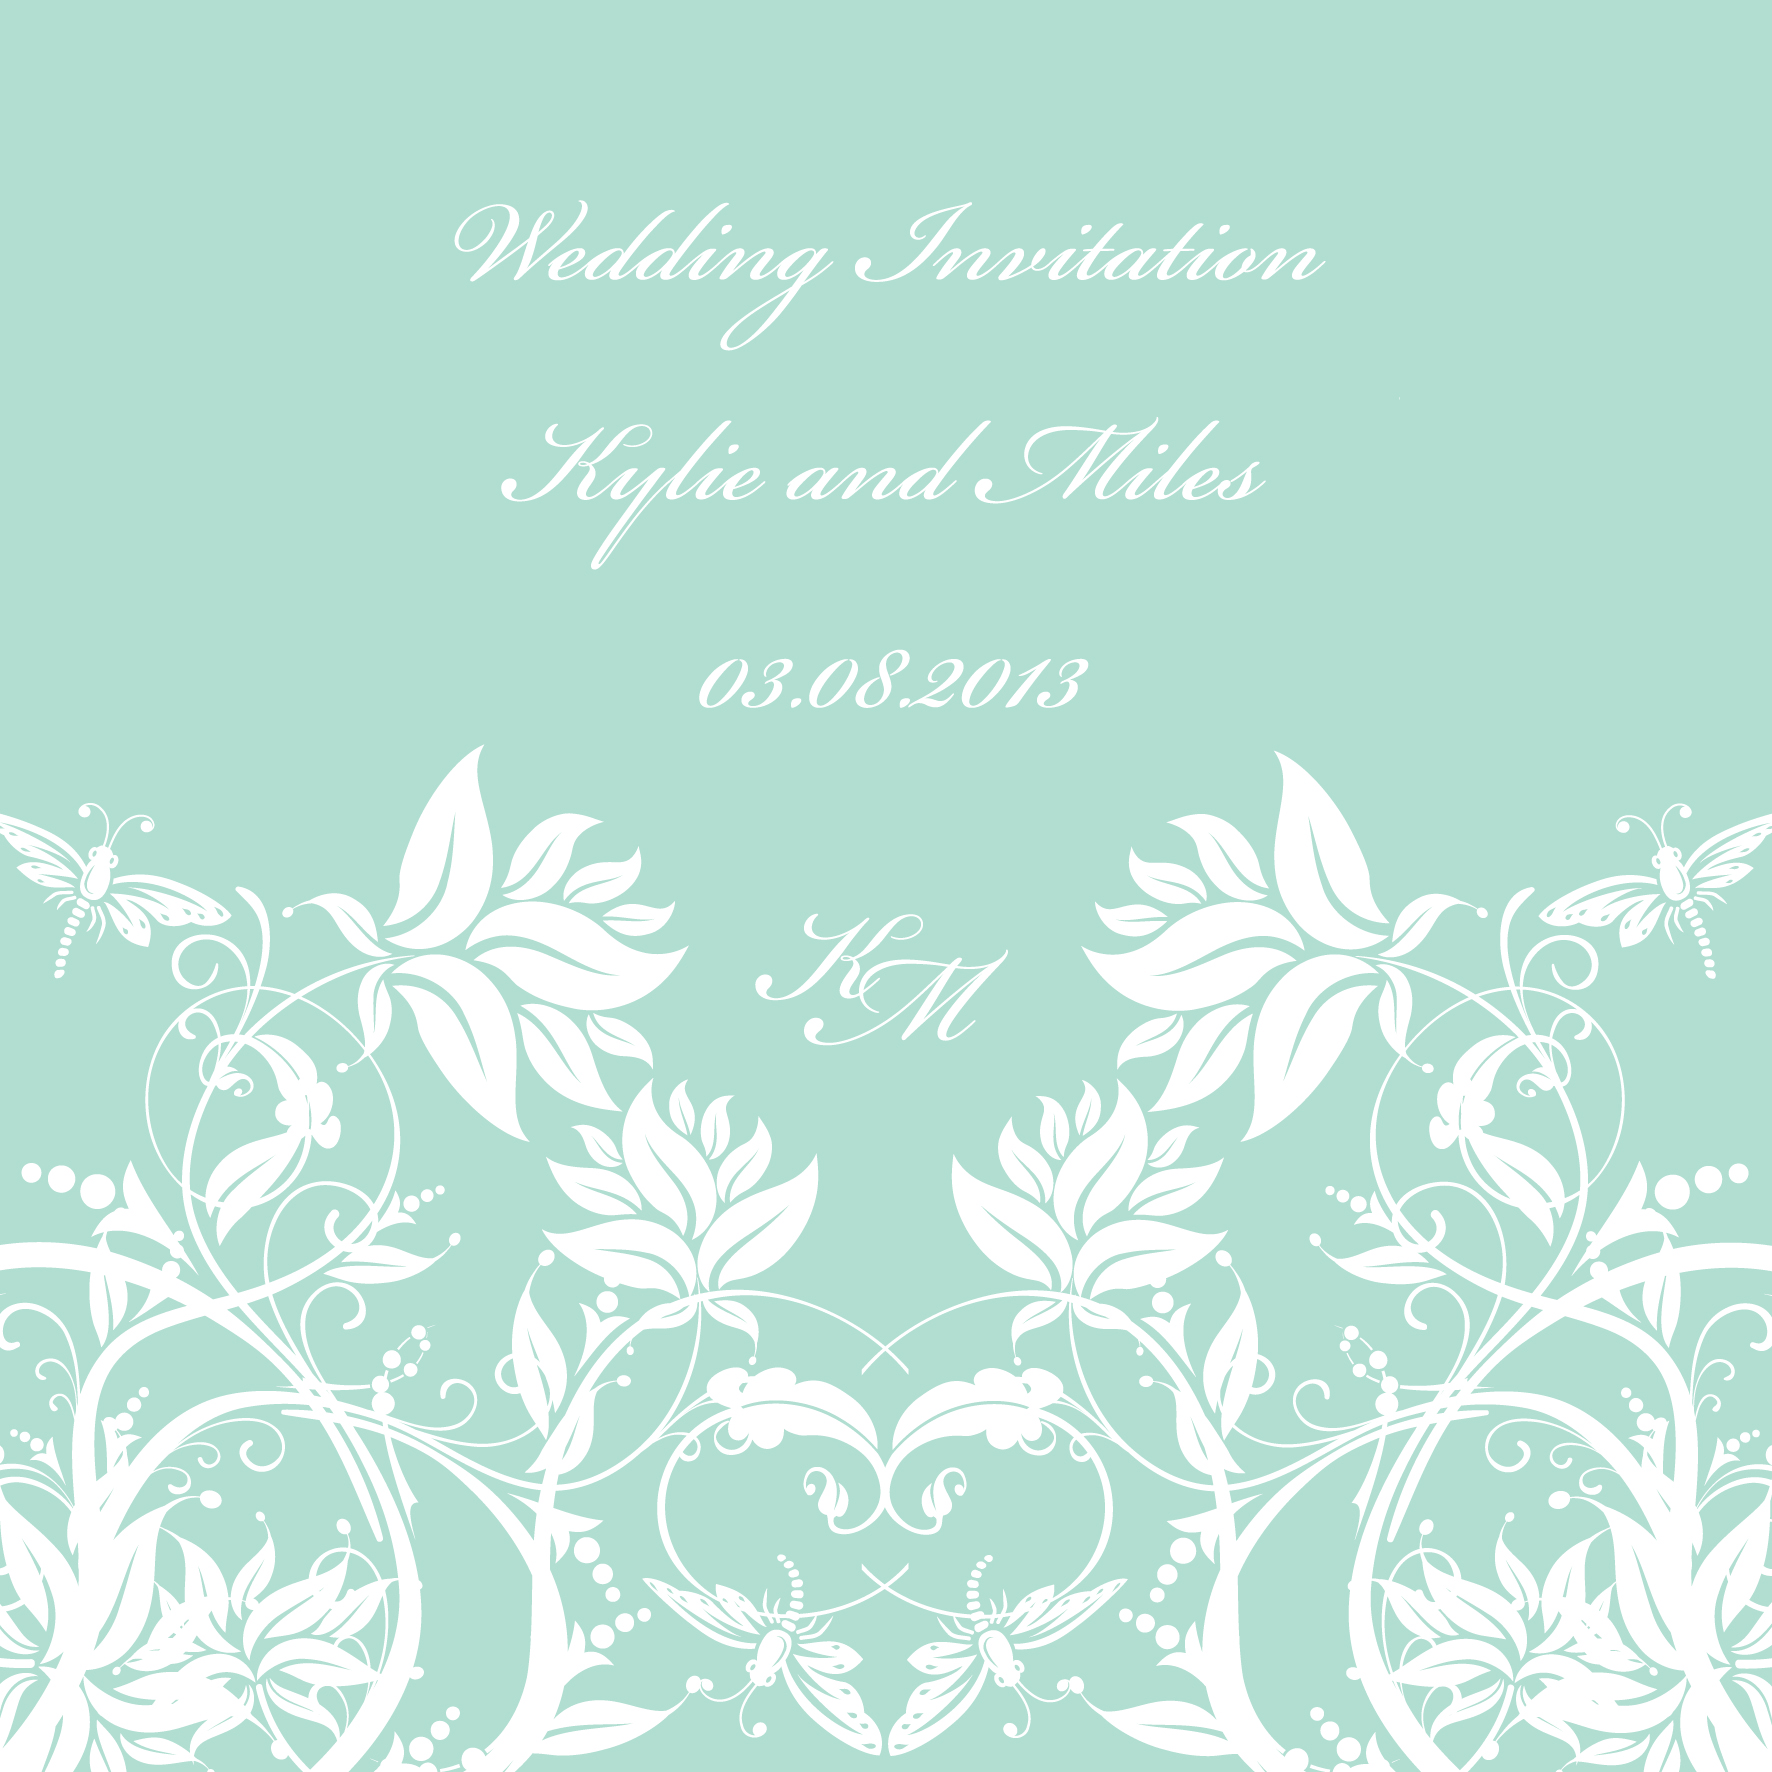 Wedding Invitation Backgrounds: Wedding Stationery Trends For 2013